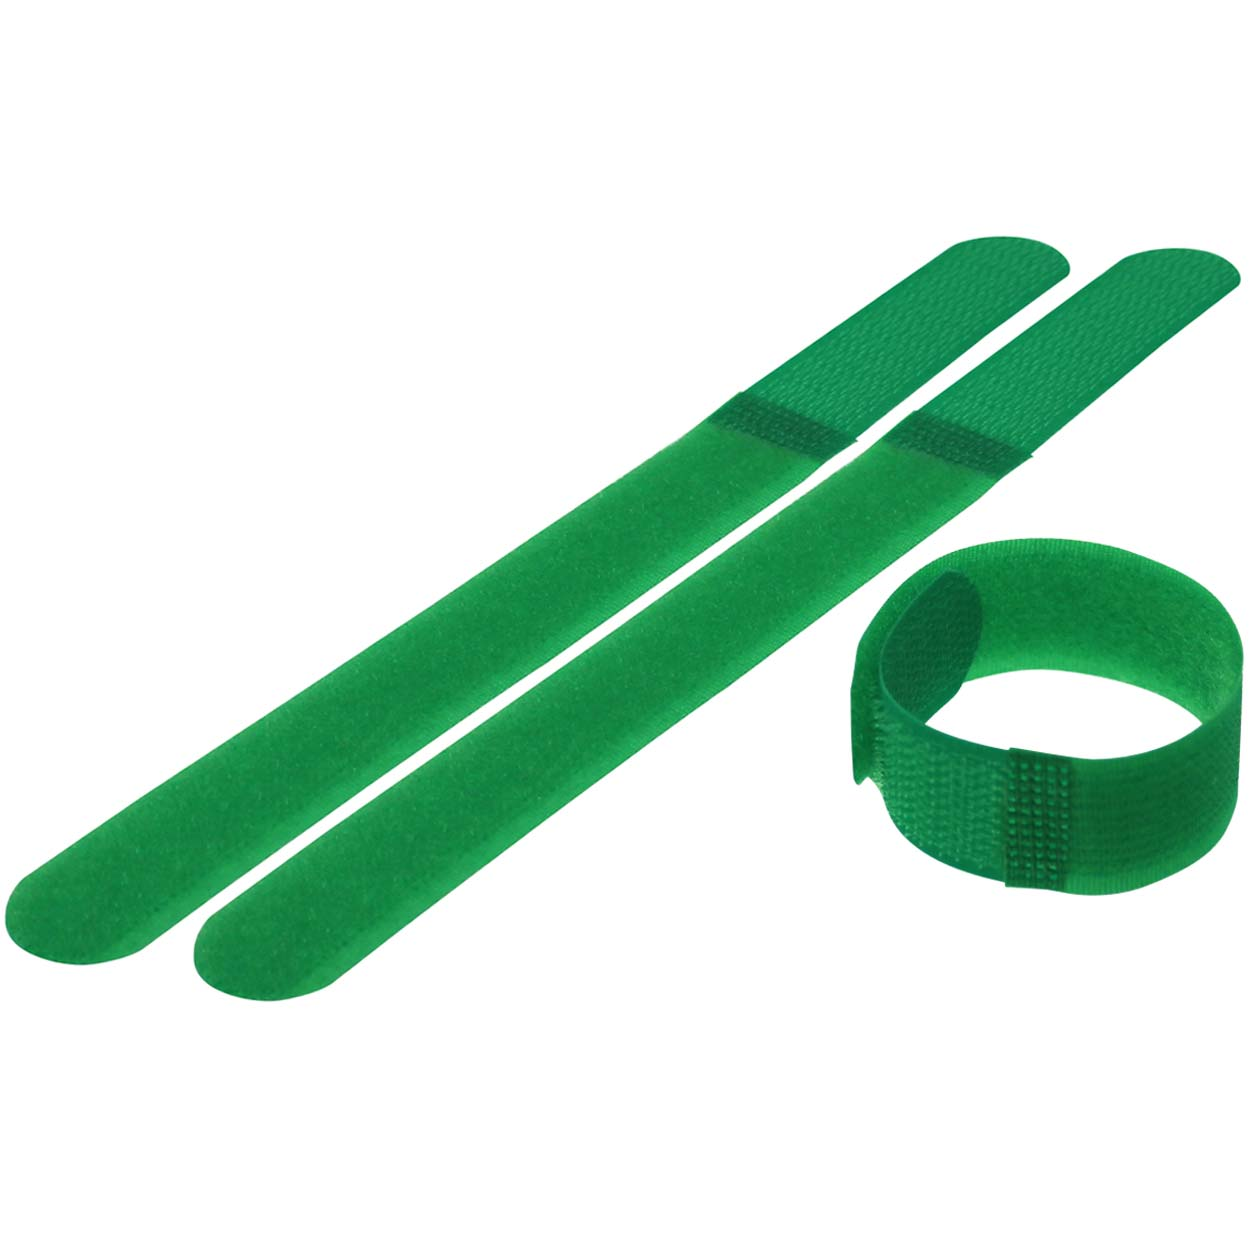 Velcro Cable Tie 0.78 x 7 inch (20 x 180mm), 10pcs/pack - Green